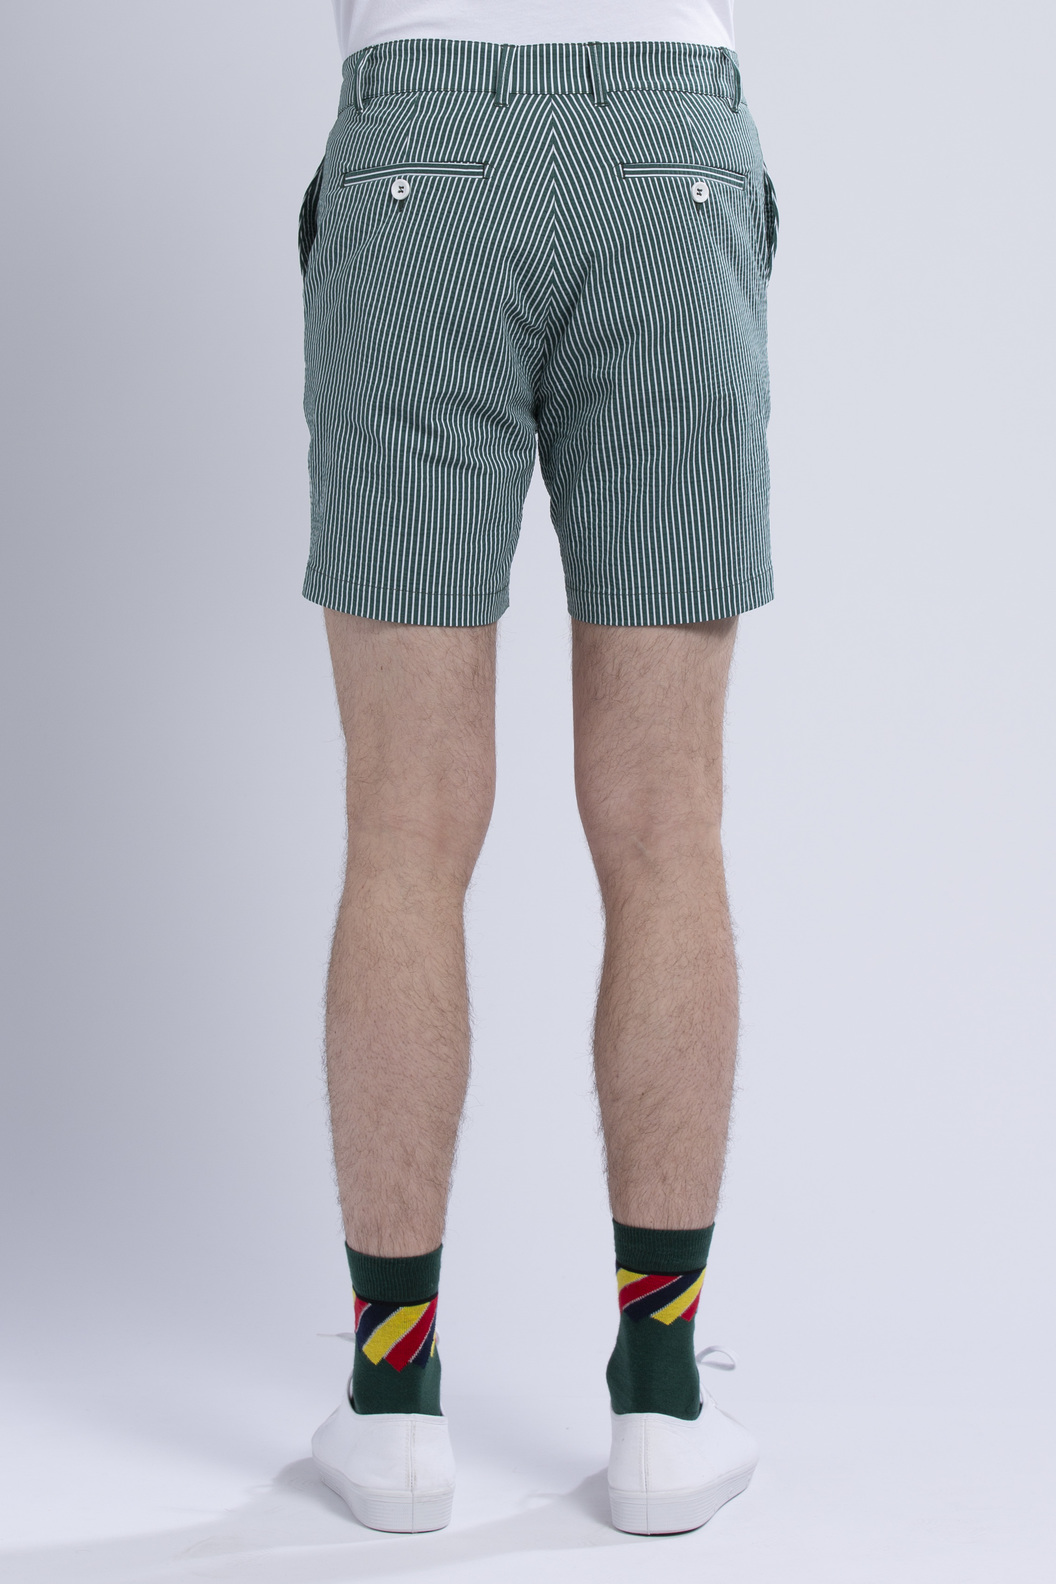 SHORTPANTS SP5 - Green stripes